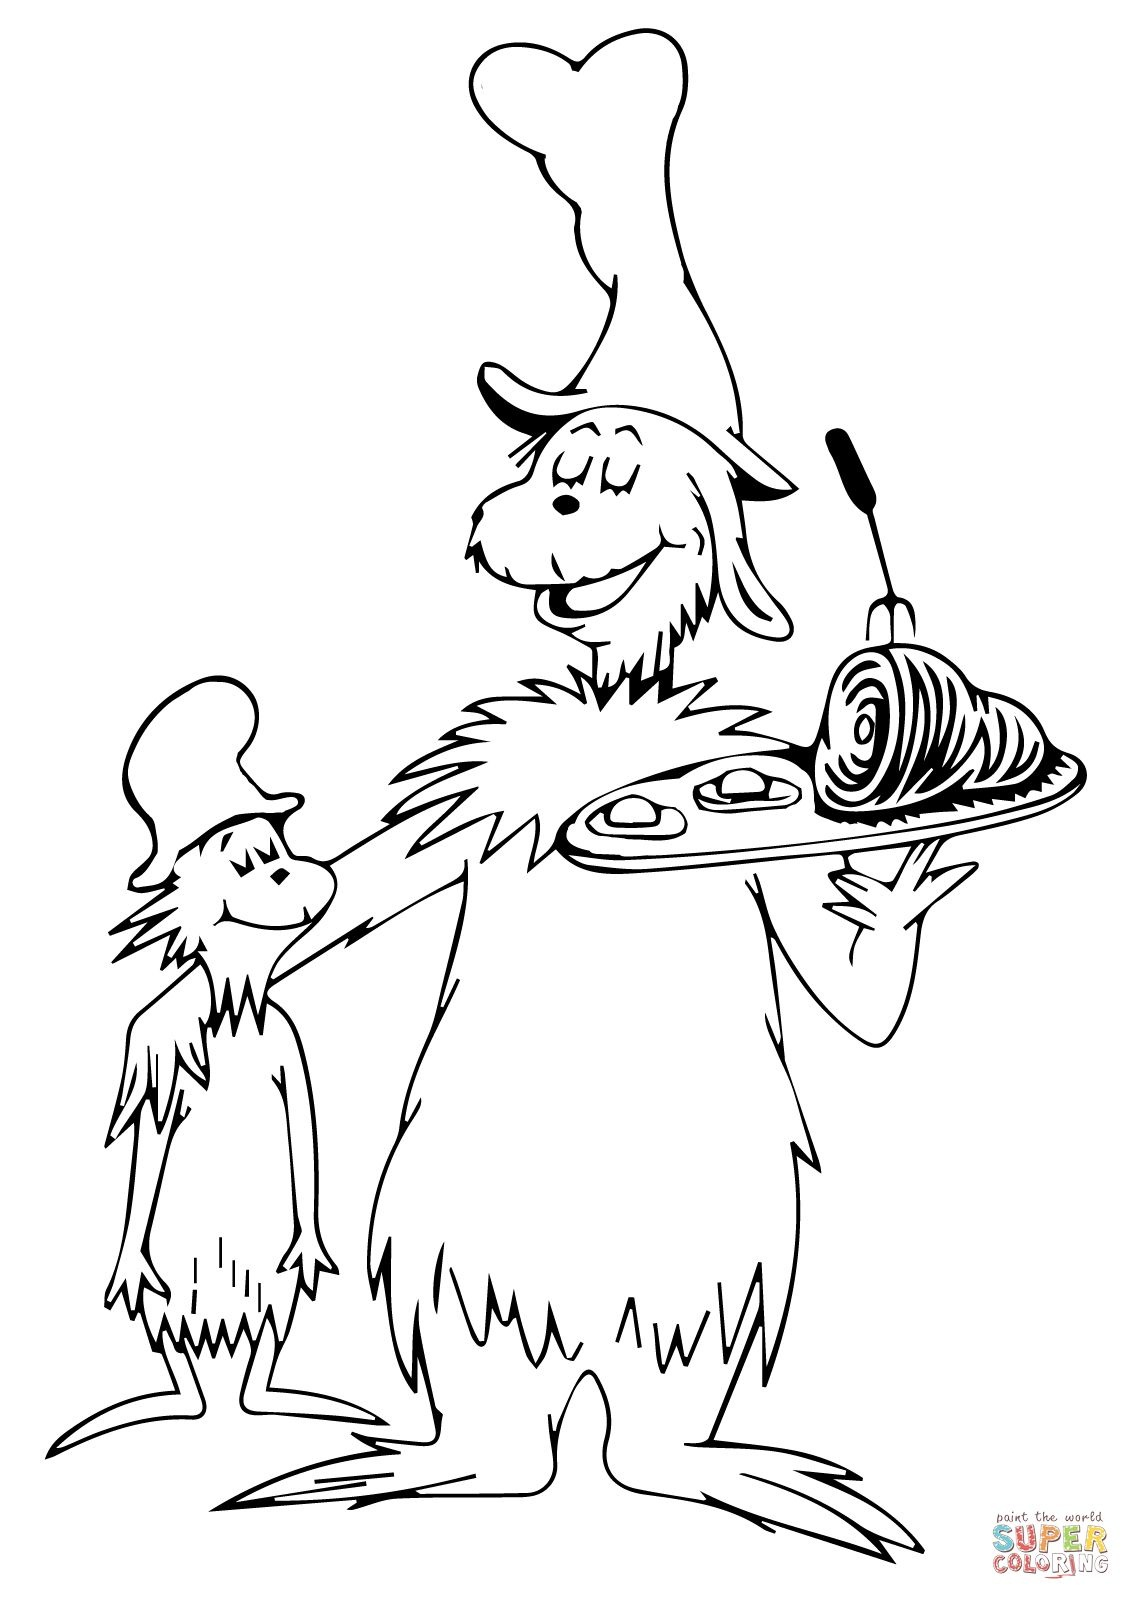 Green Eggs And Ham Coloring Page | Young Womens | Dr Seuss Coloring - Free Printable Dr Seuss Coloring Pages